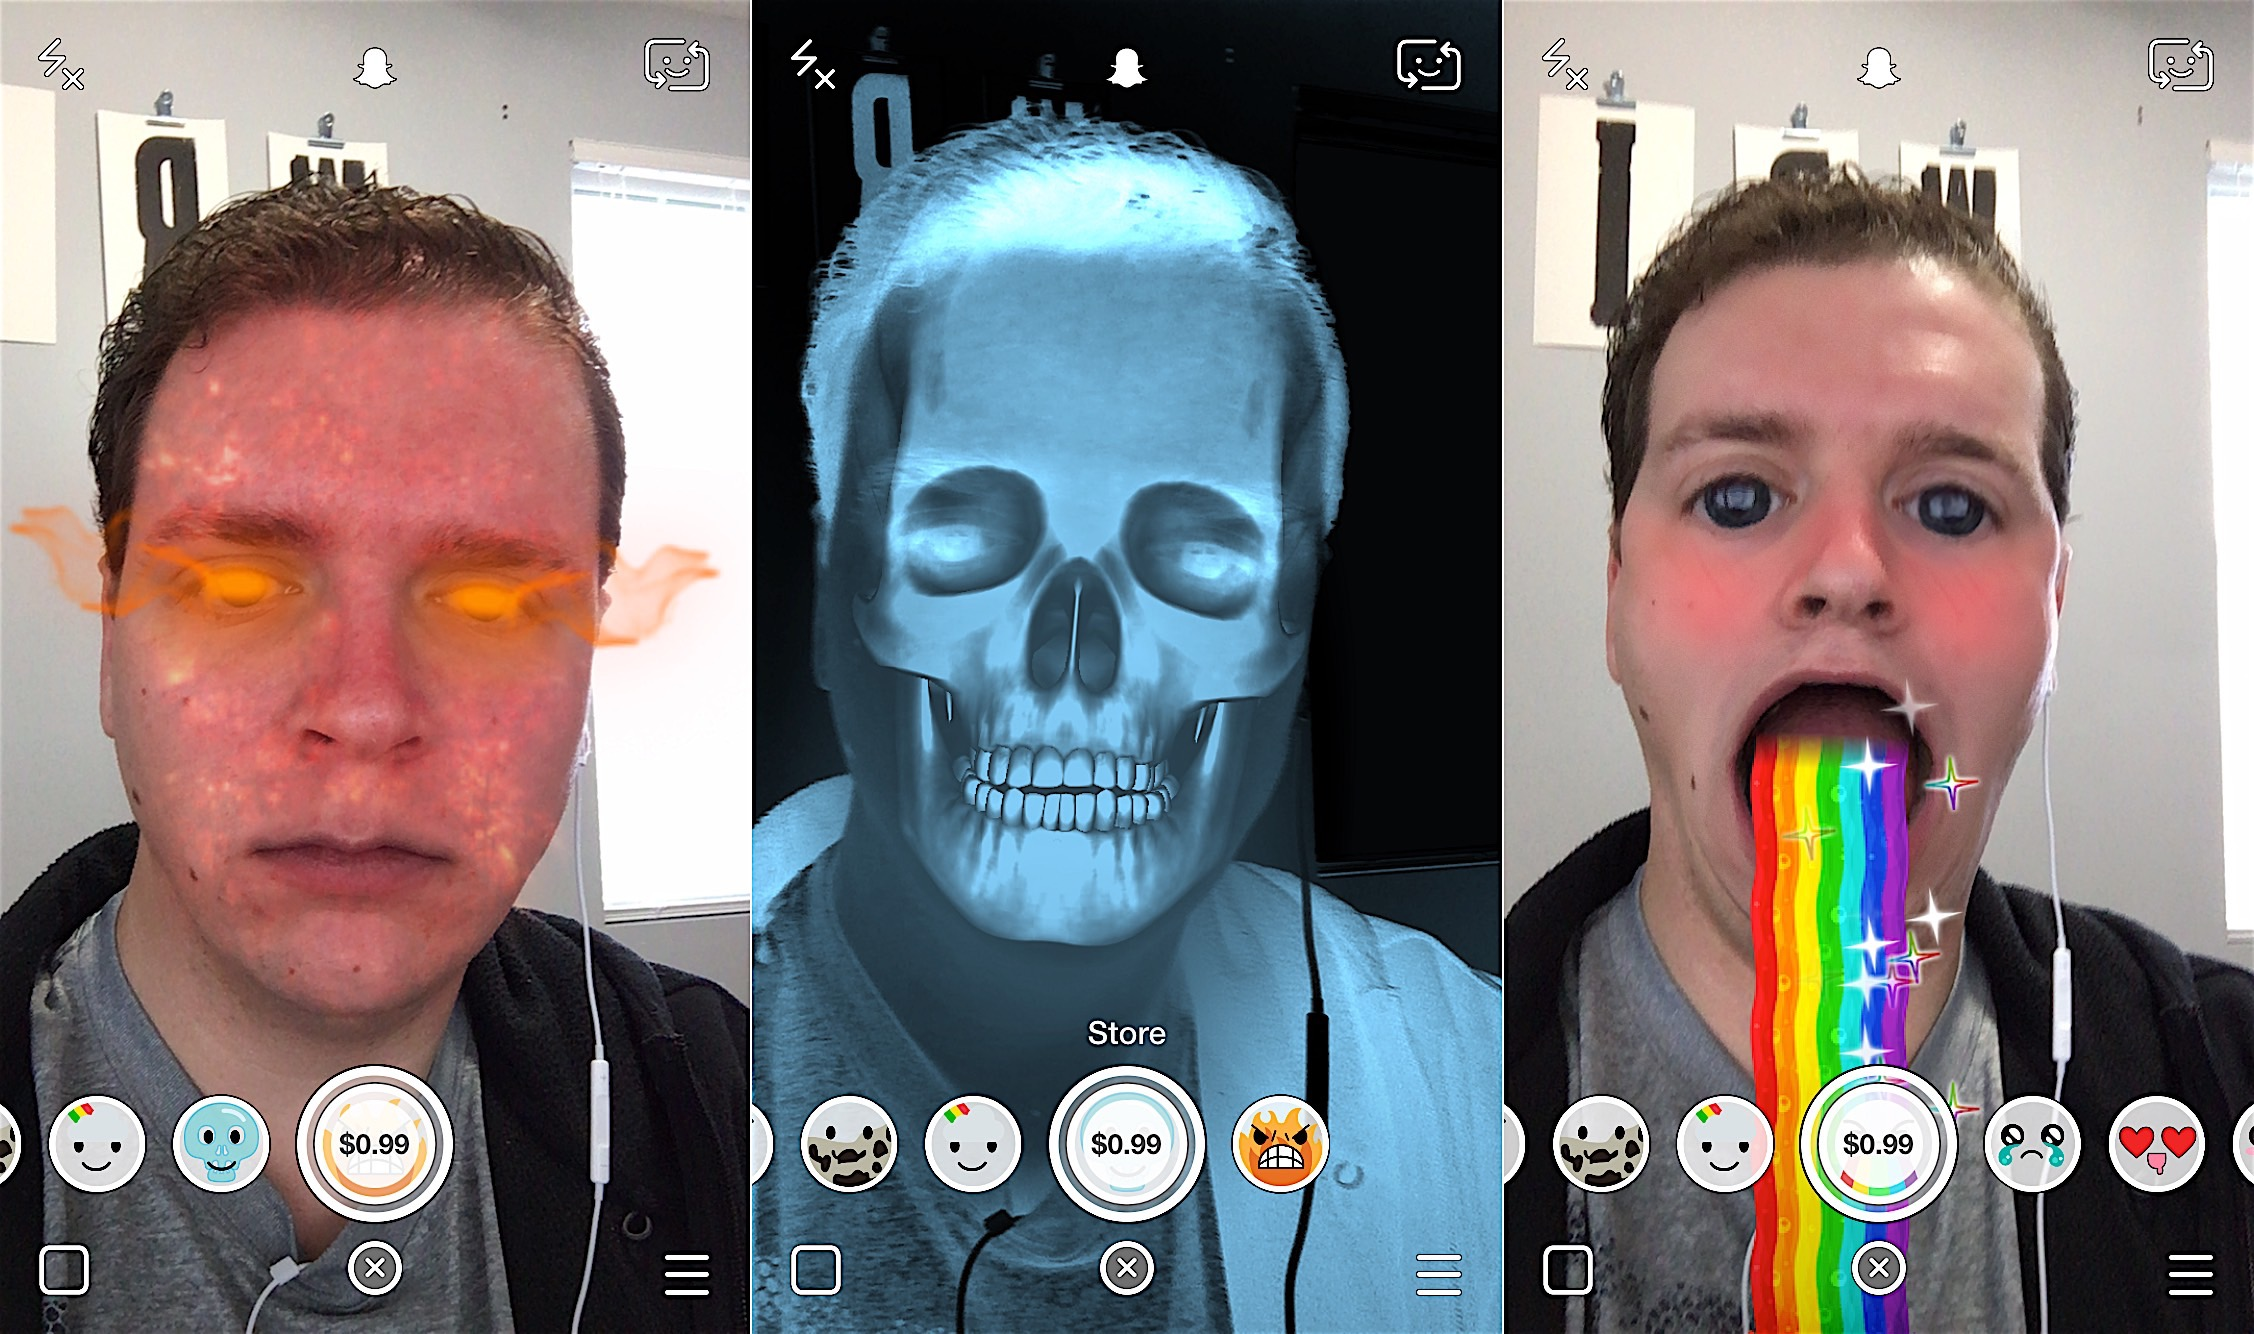 The November Snapchat update adds a Snapchat Lens Store with paid lenses.